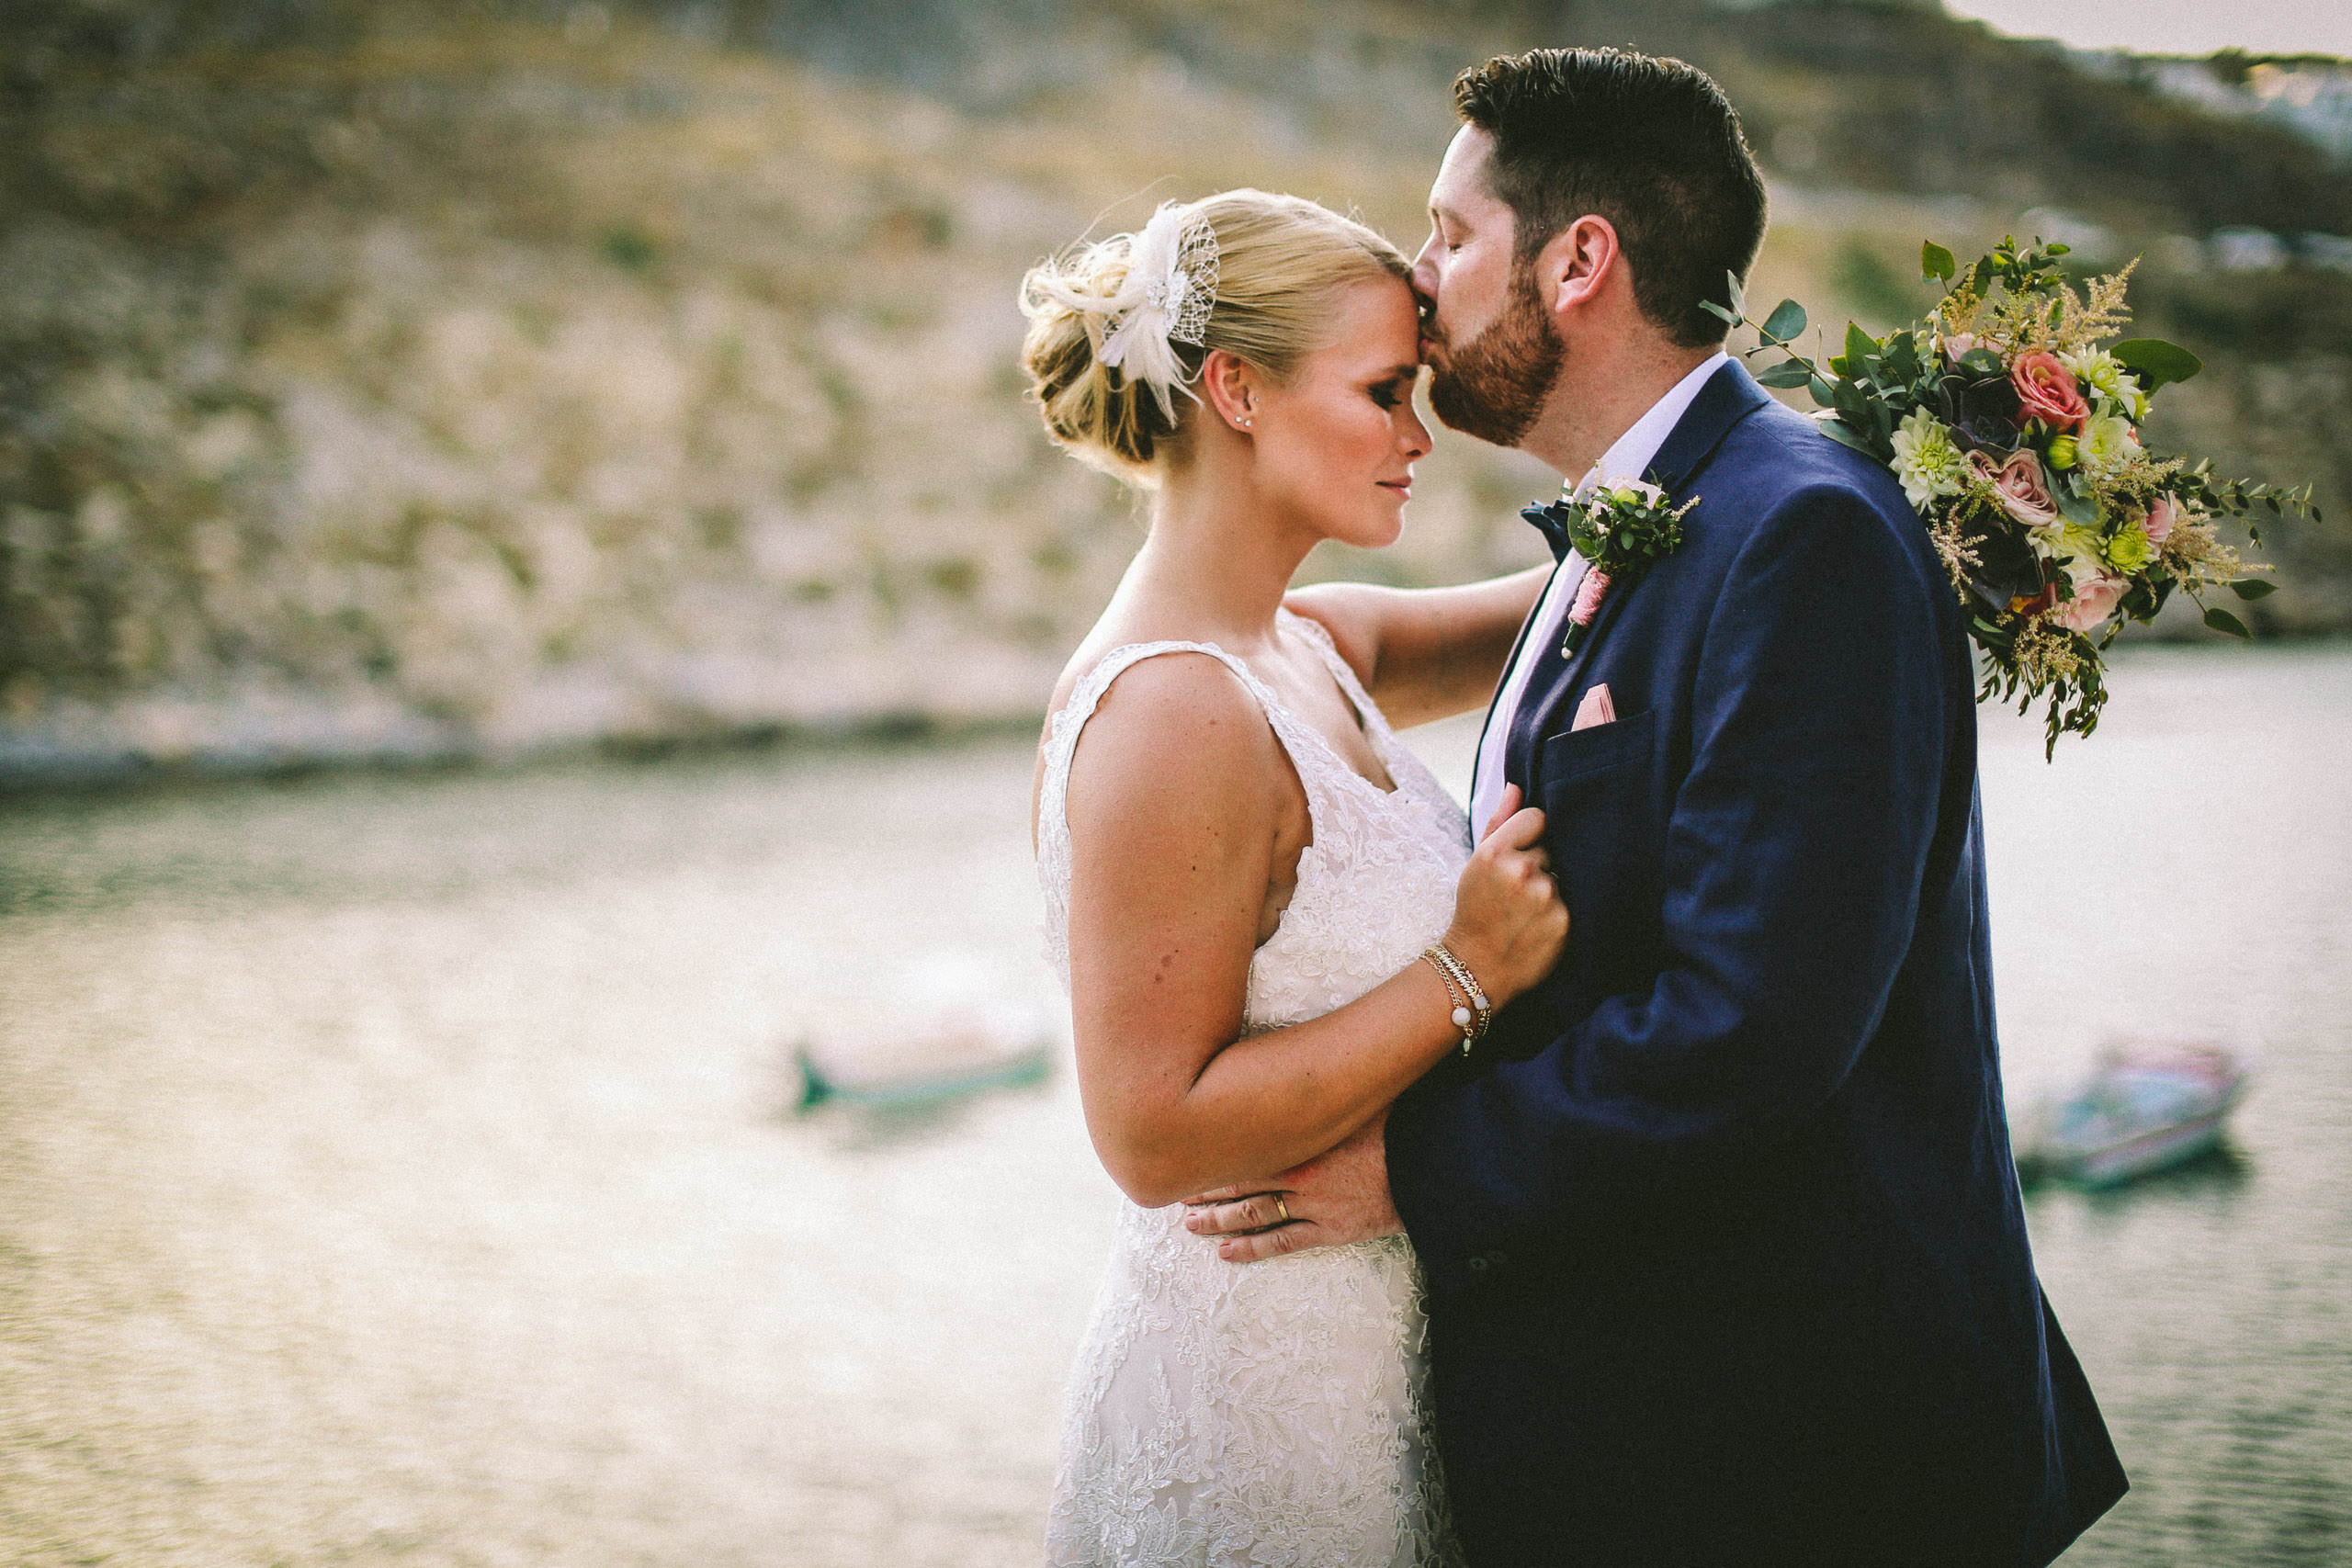 BEAUTIFUL BEACH WEDDING LINDOS, RHODES, GREECE | lindos